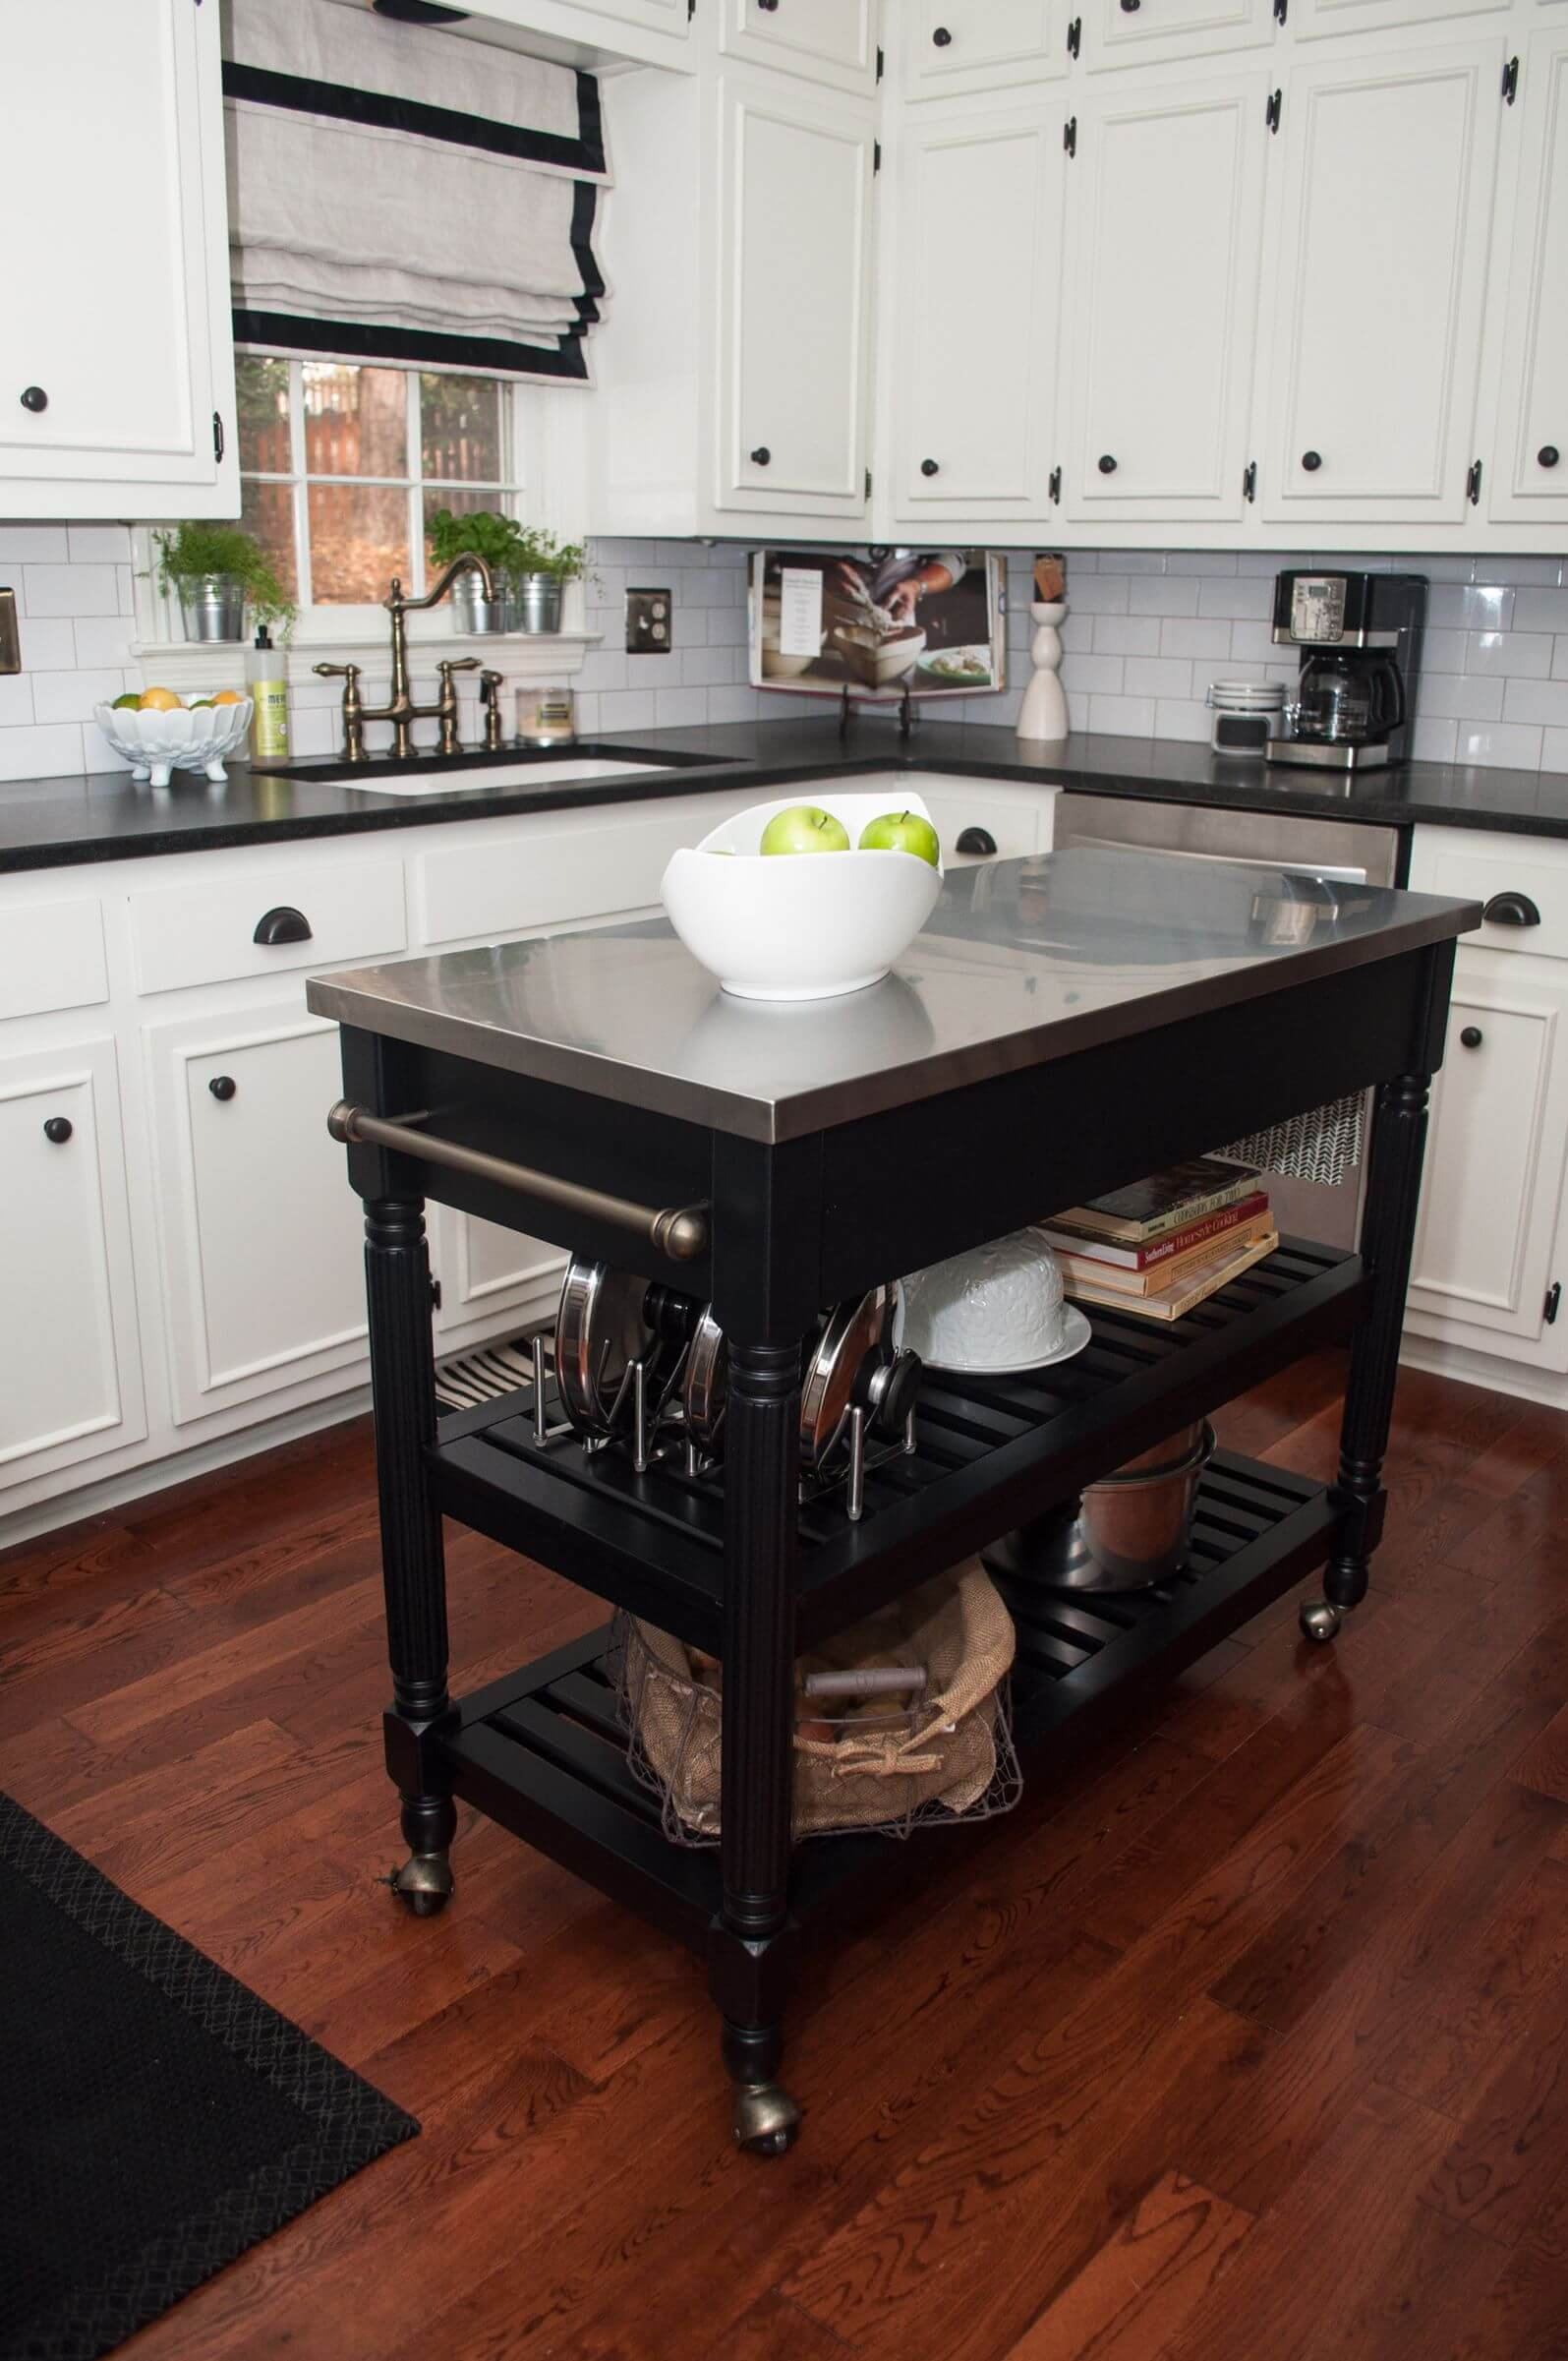 10 Types of Small Kitchen Islands on Wheels Home Stratosphere